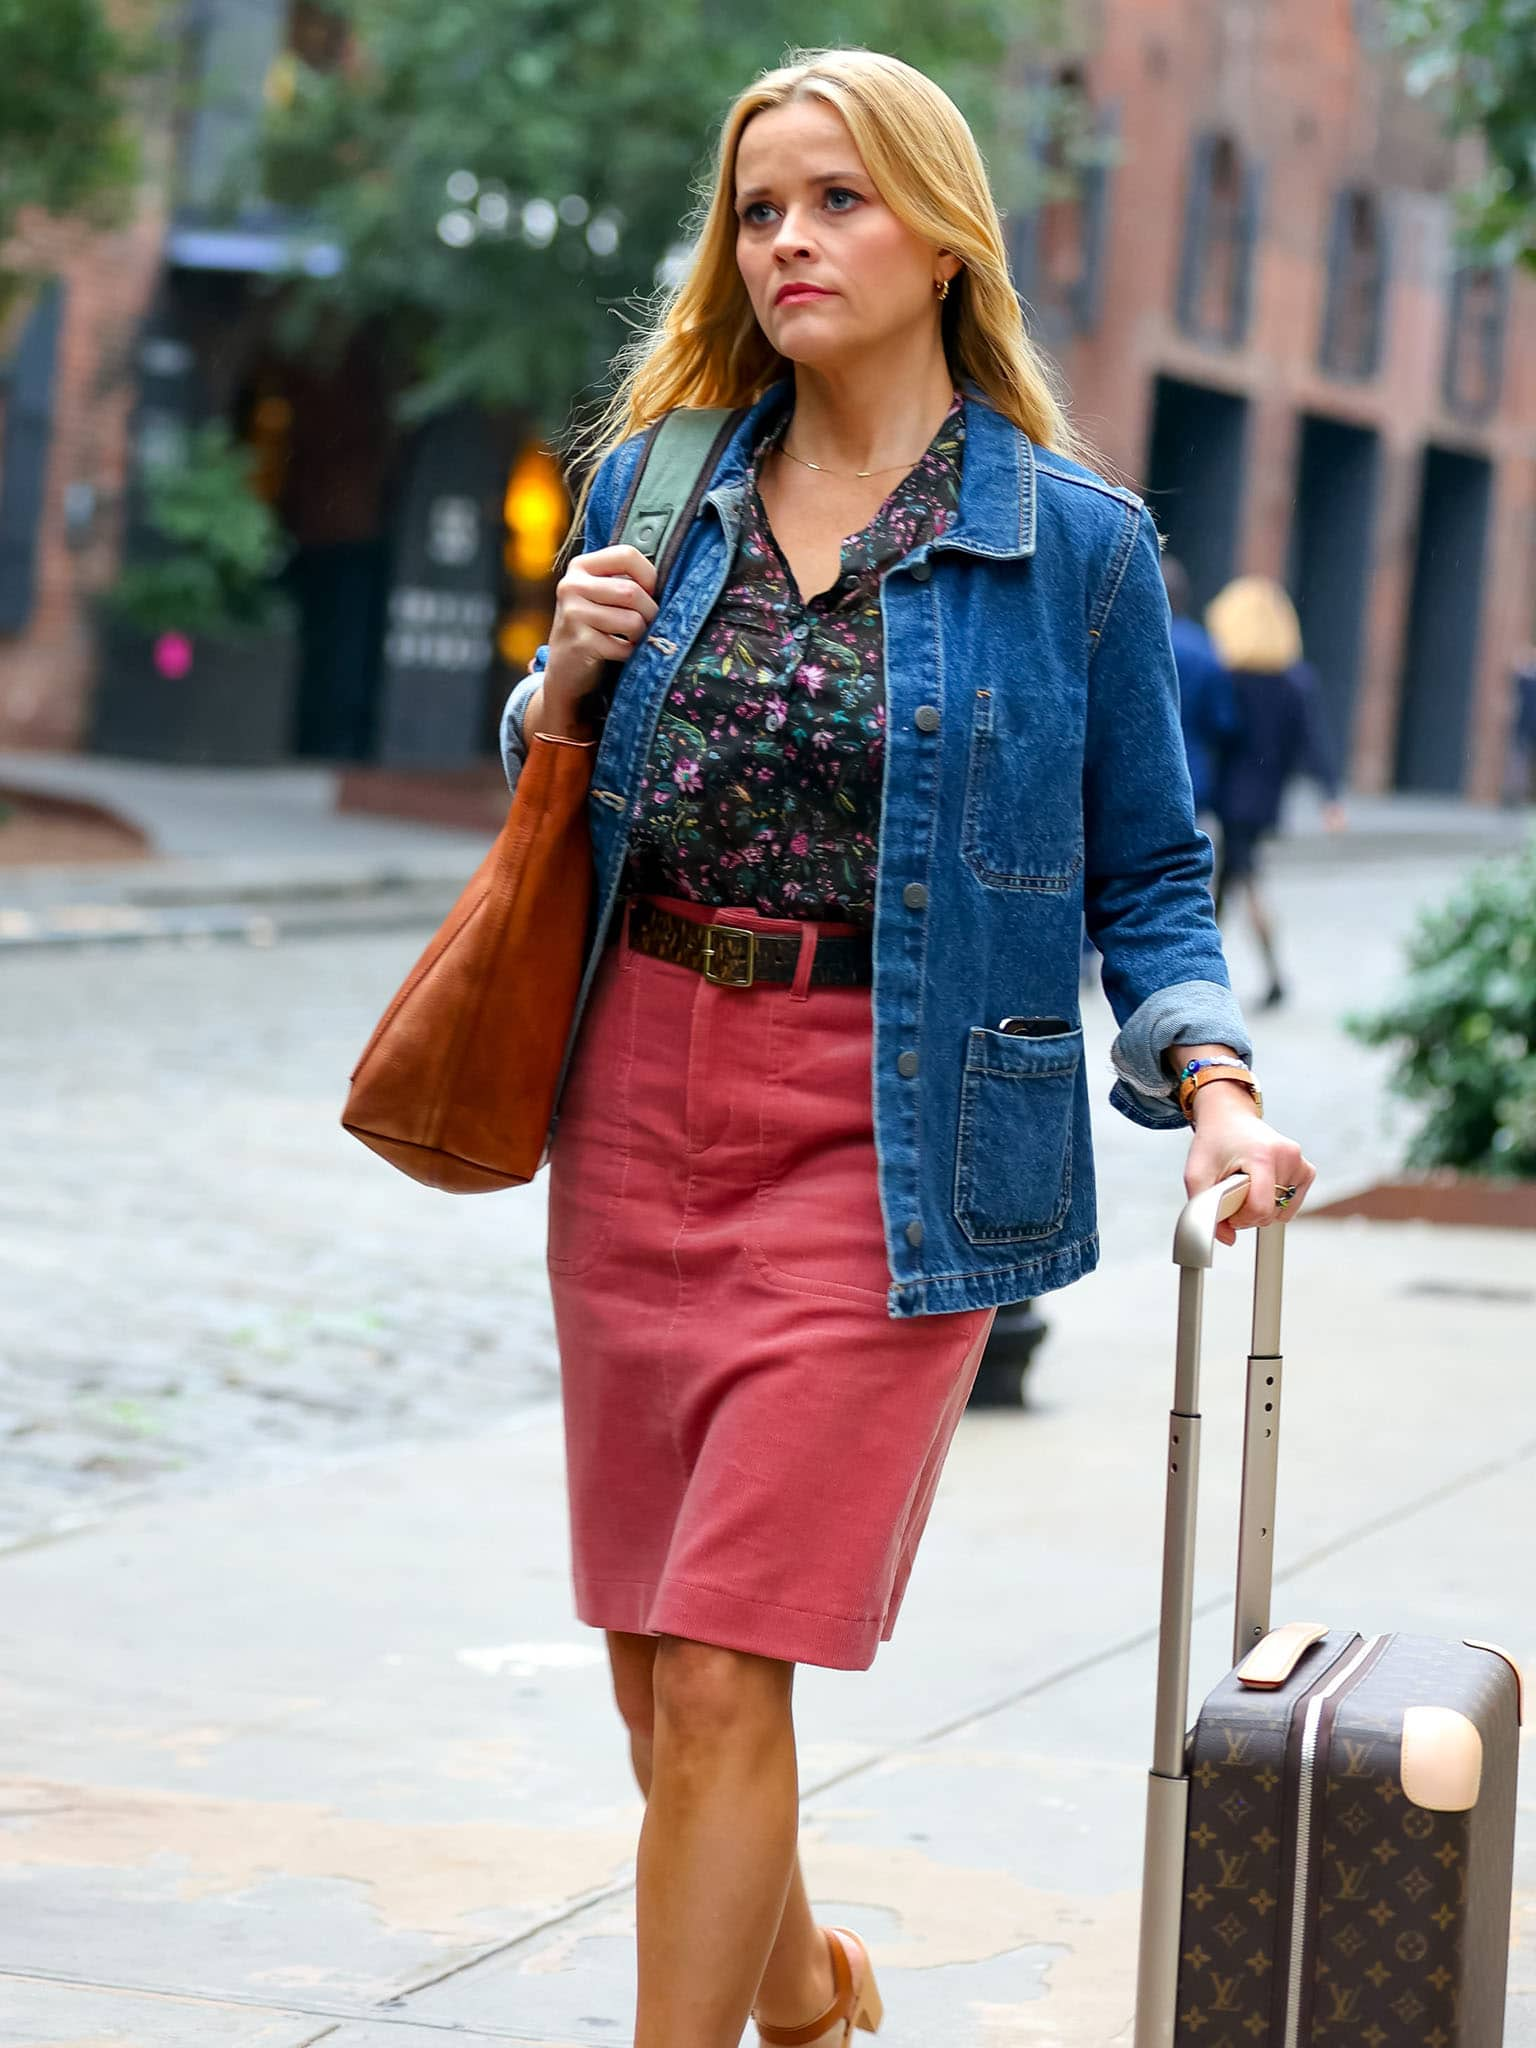 Reese Witherspoon is pretty in pink with a coordinating soft pink makeup look